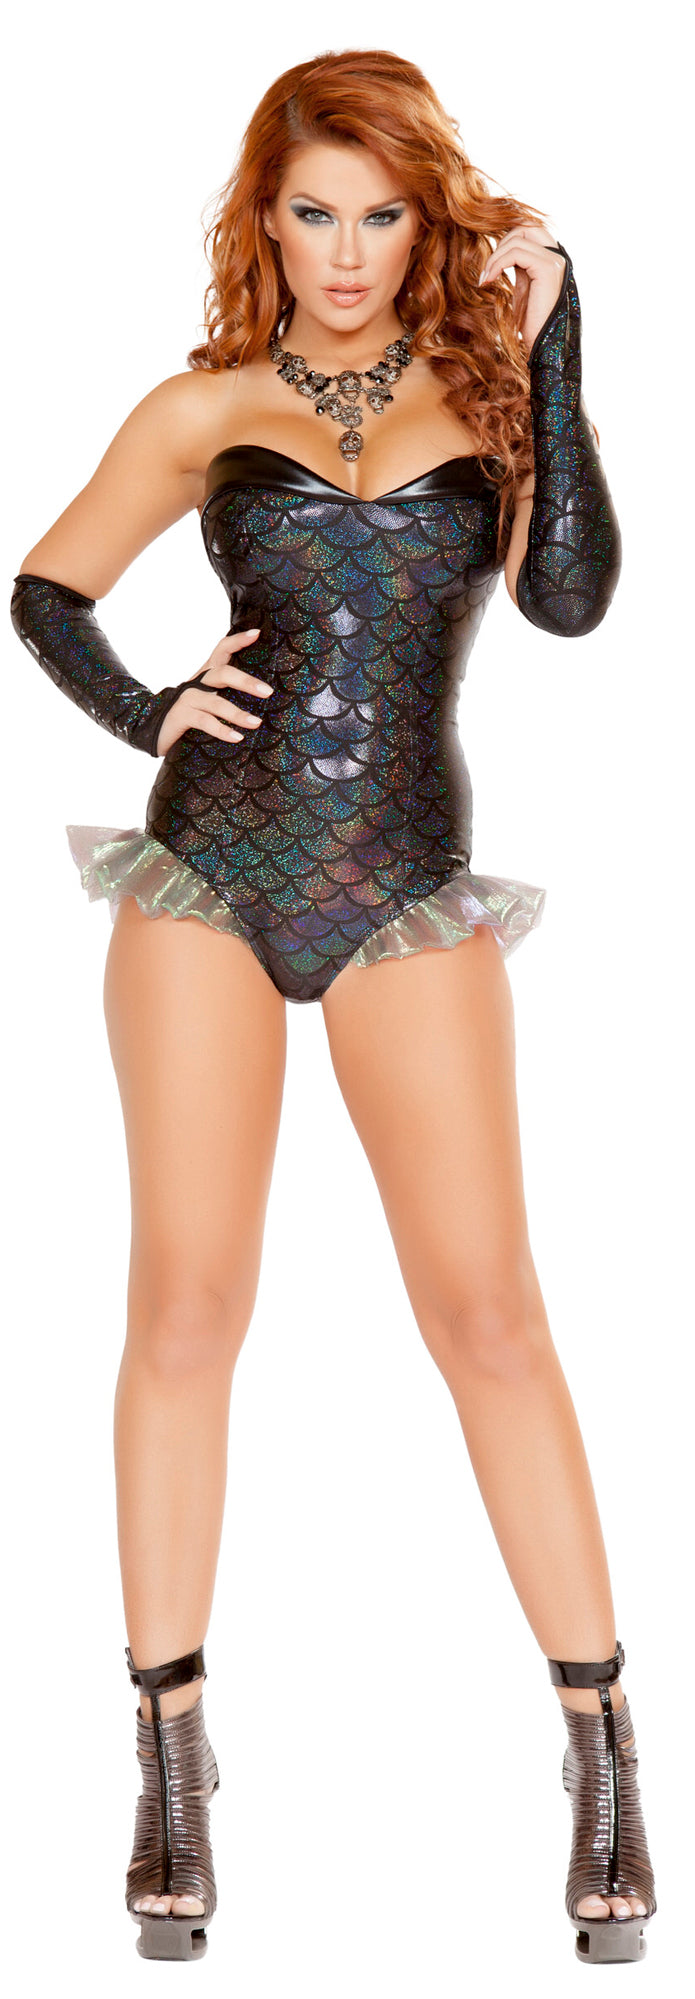 Dark Mermaid Romper Costume RM-4662 Front